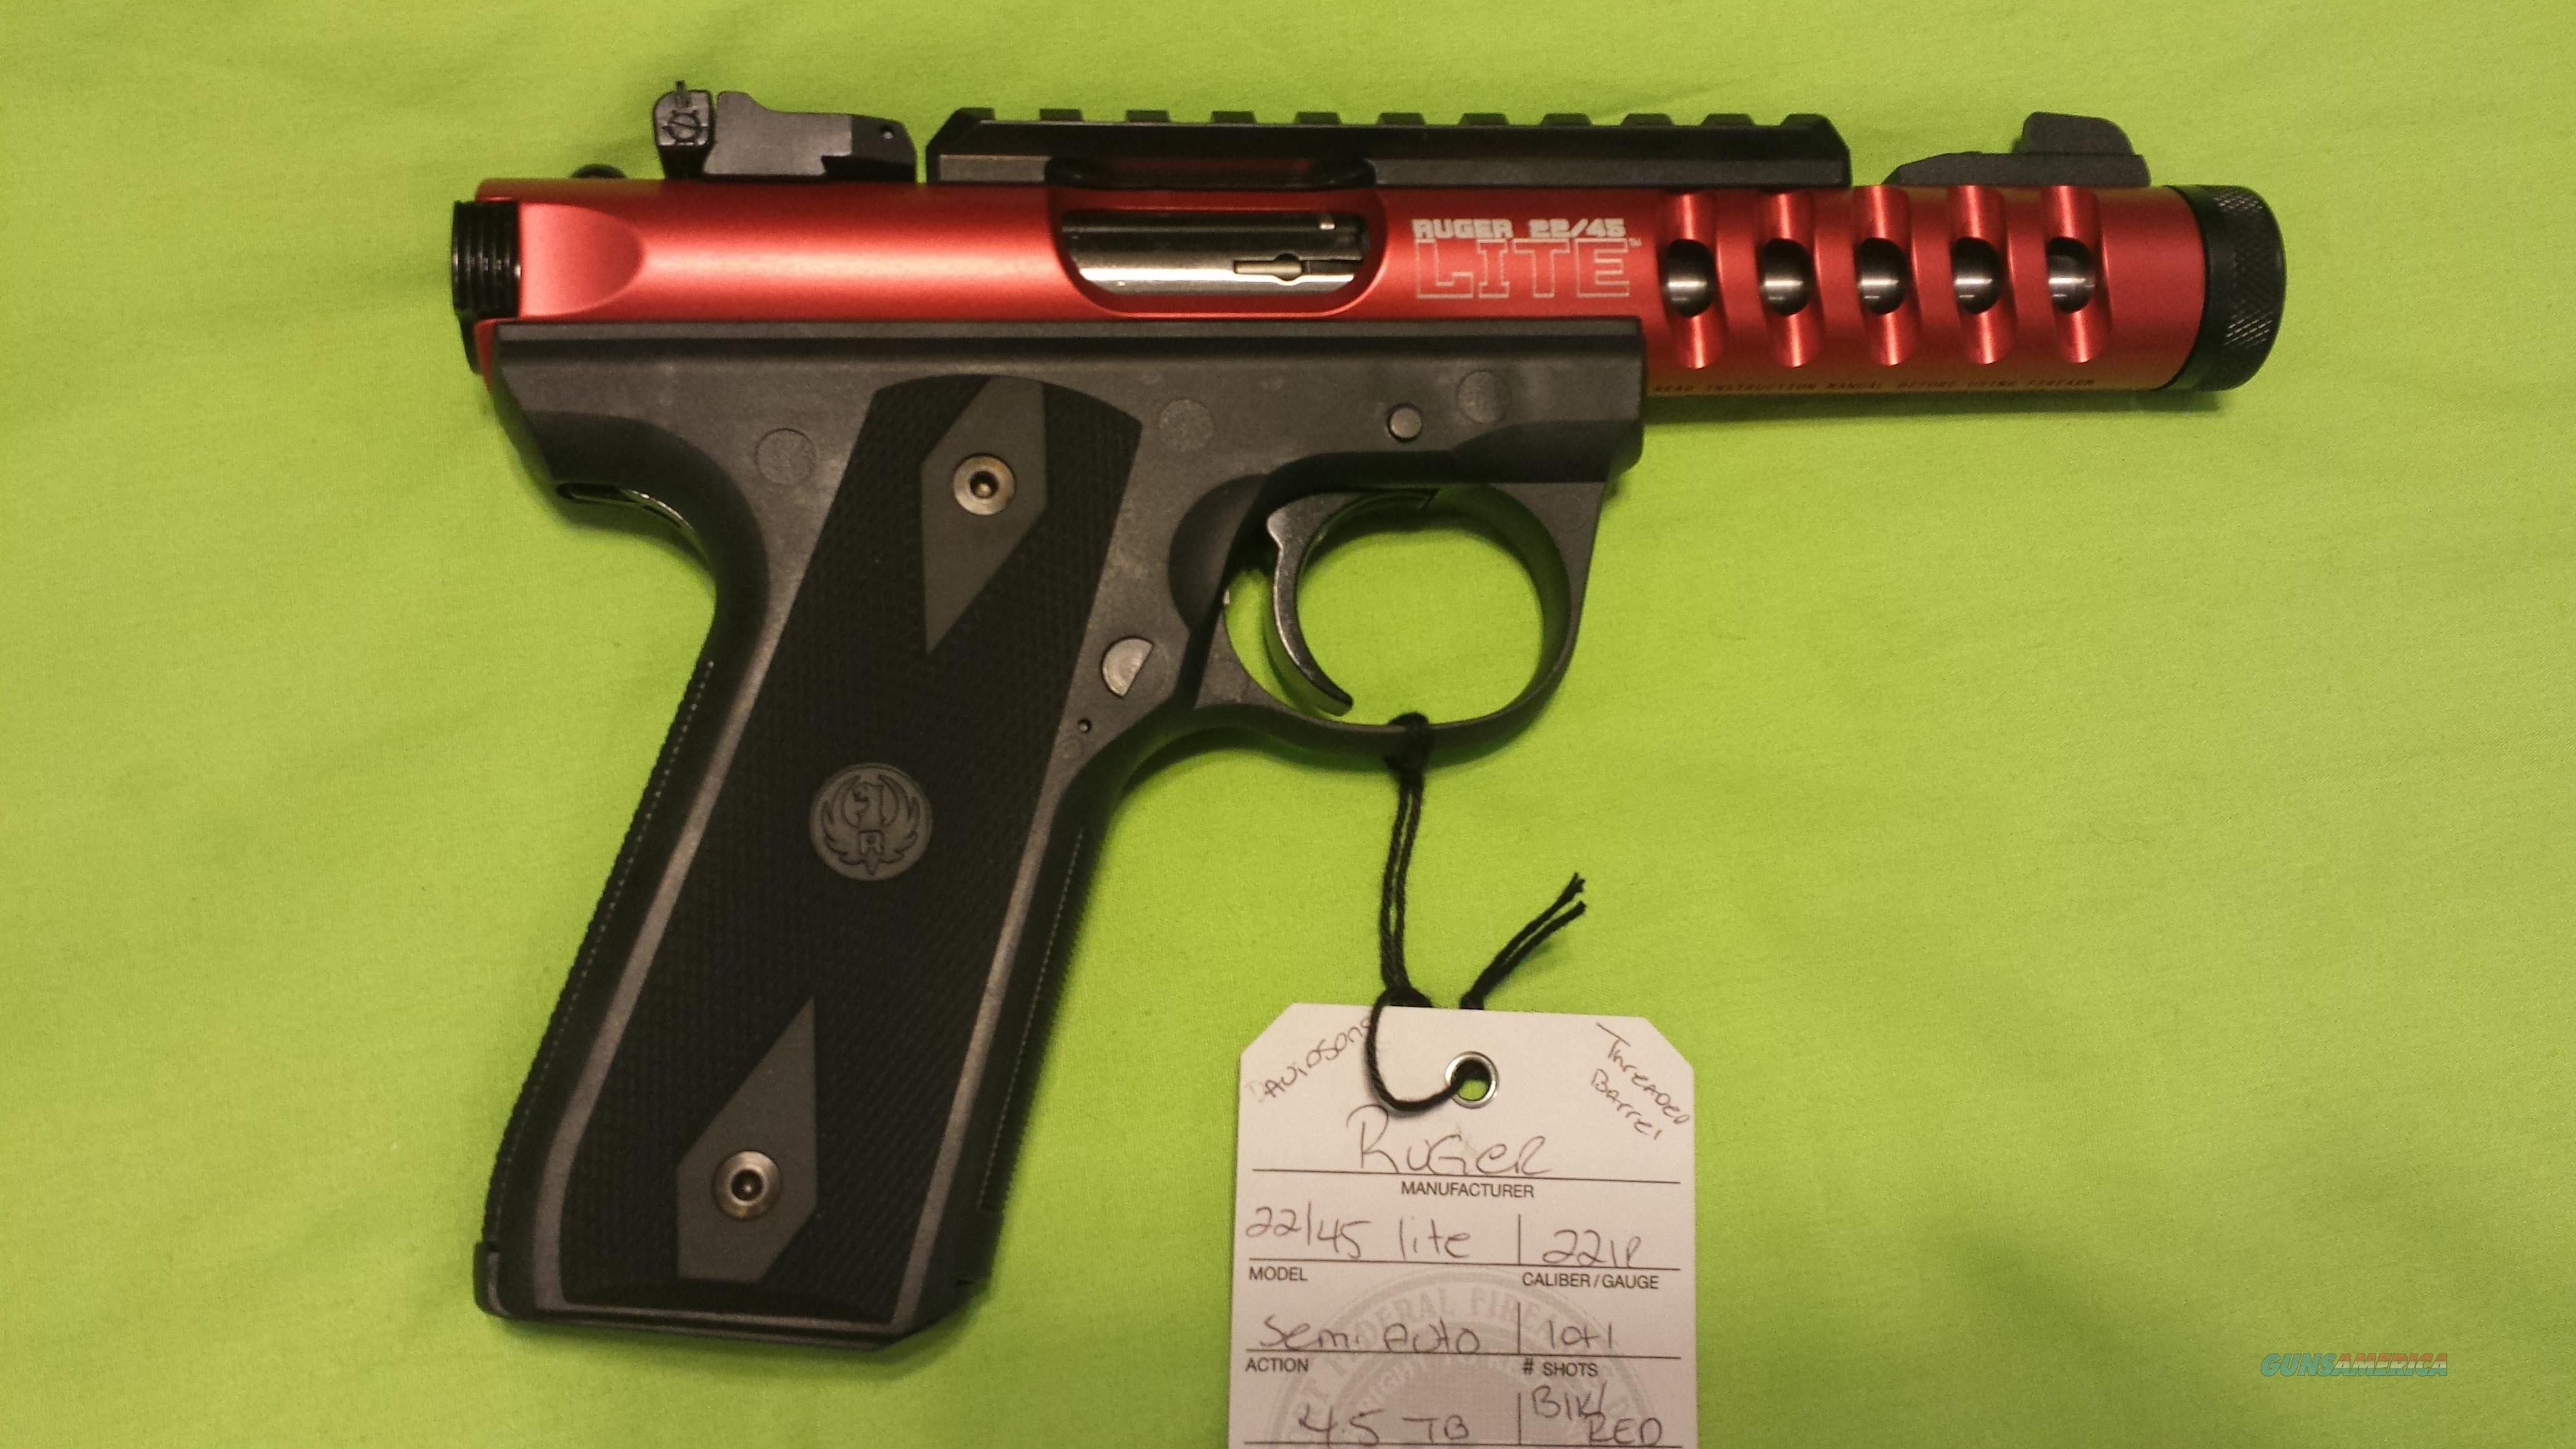 RUGER 22/45 LITE 22 45 LITE 22LR 4.5 RED THREADED   Guns > Pistols > Ruger Semi-Auto Pistols > 22/45